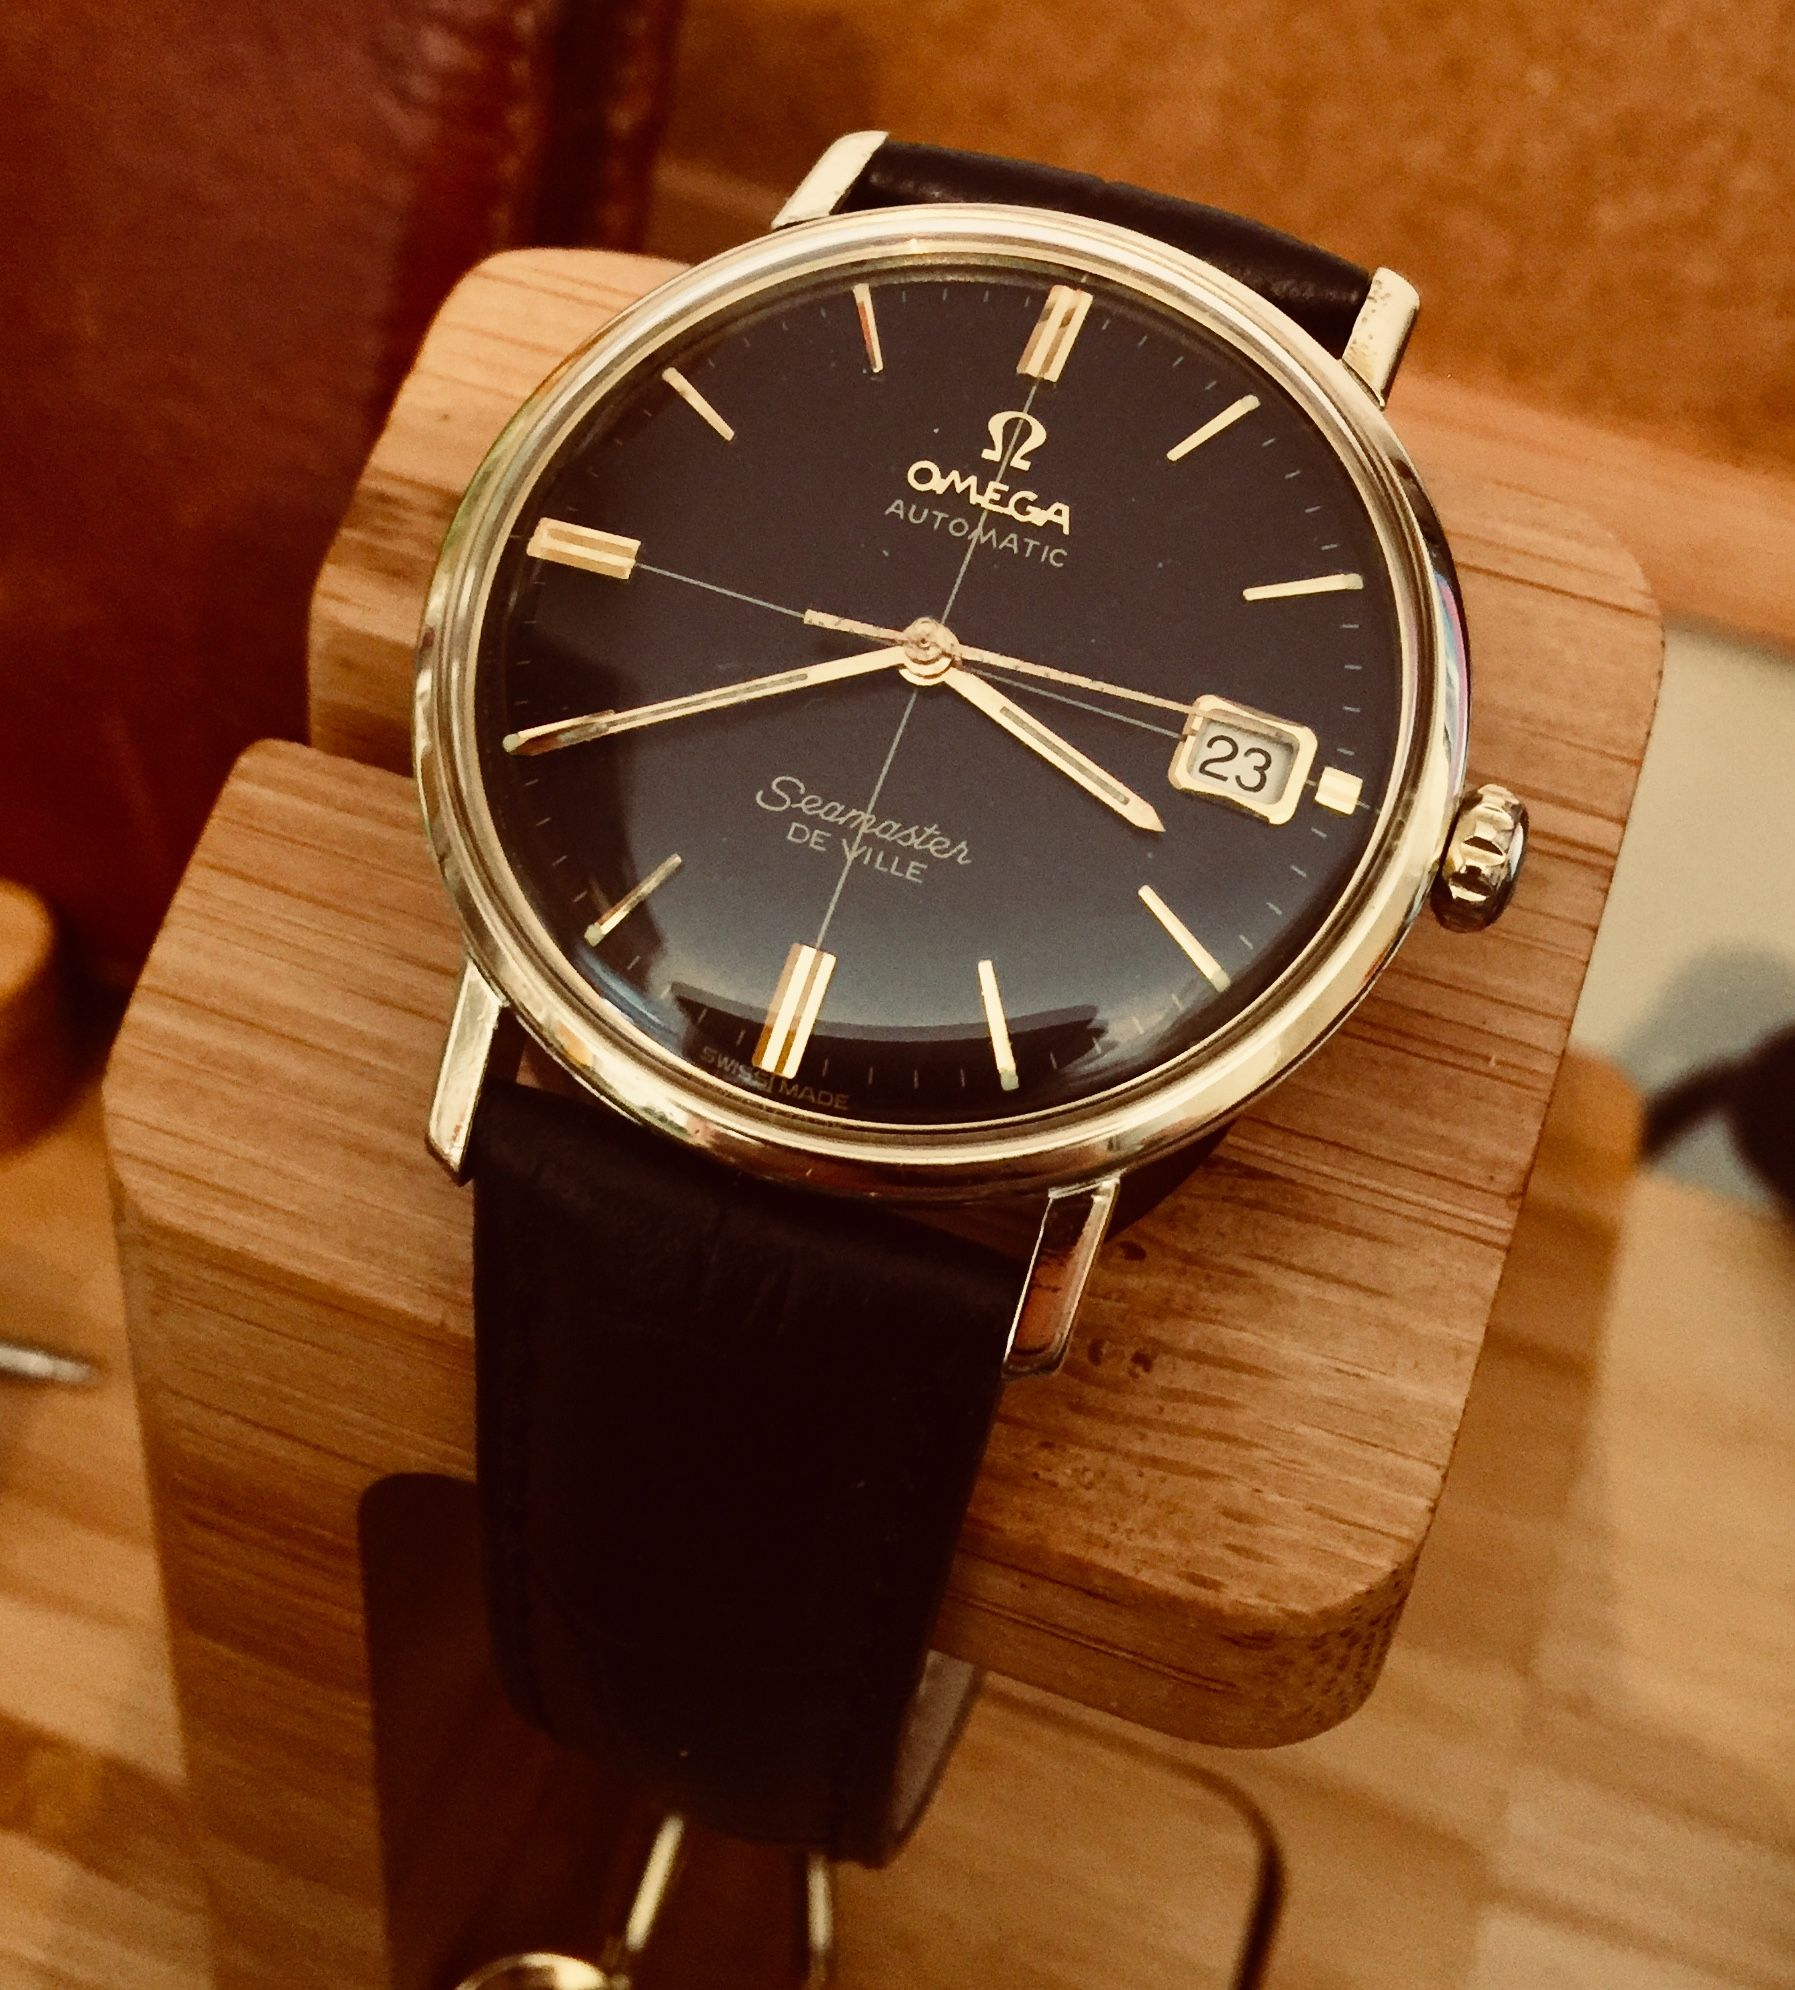 Omega men's Seamaster De Ville vintage watch #vintagewatches